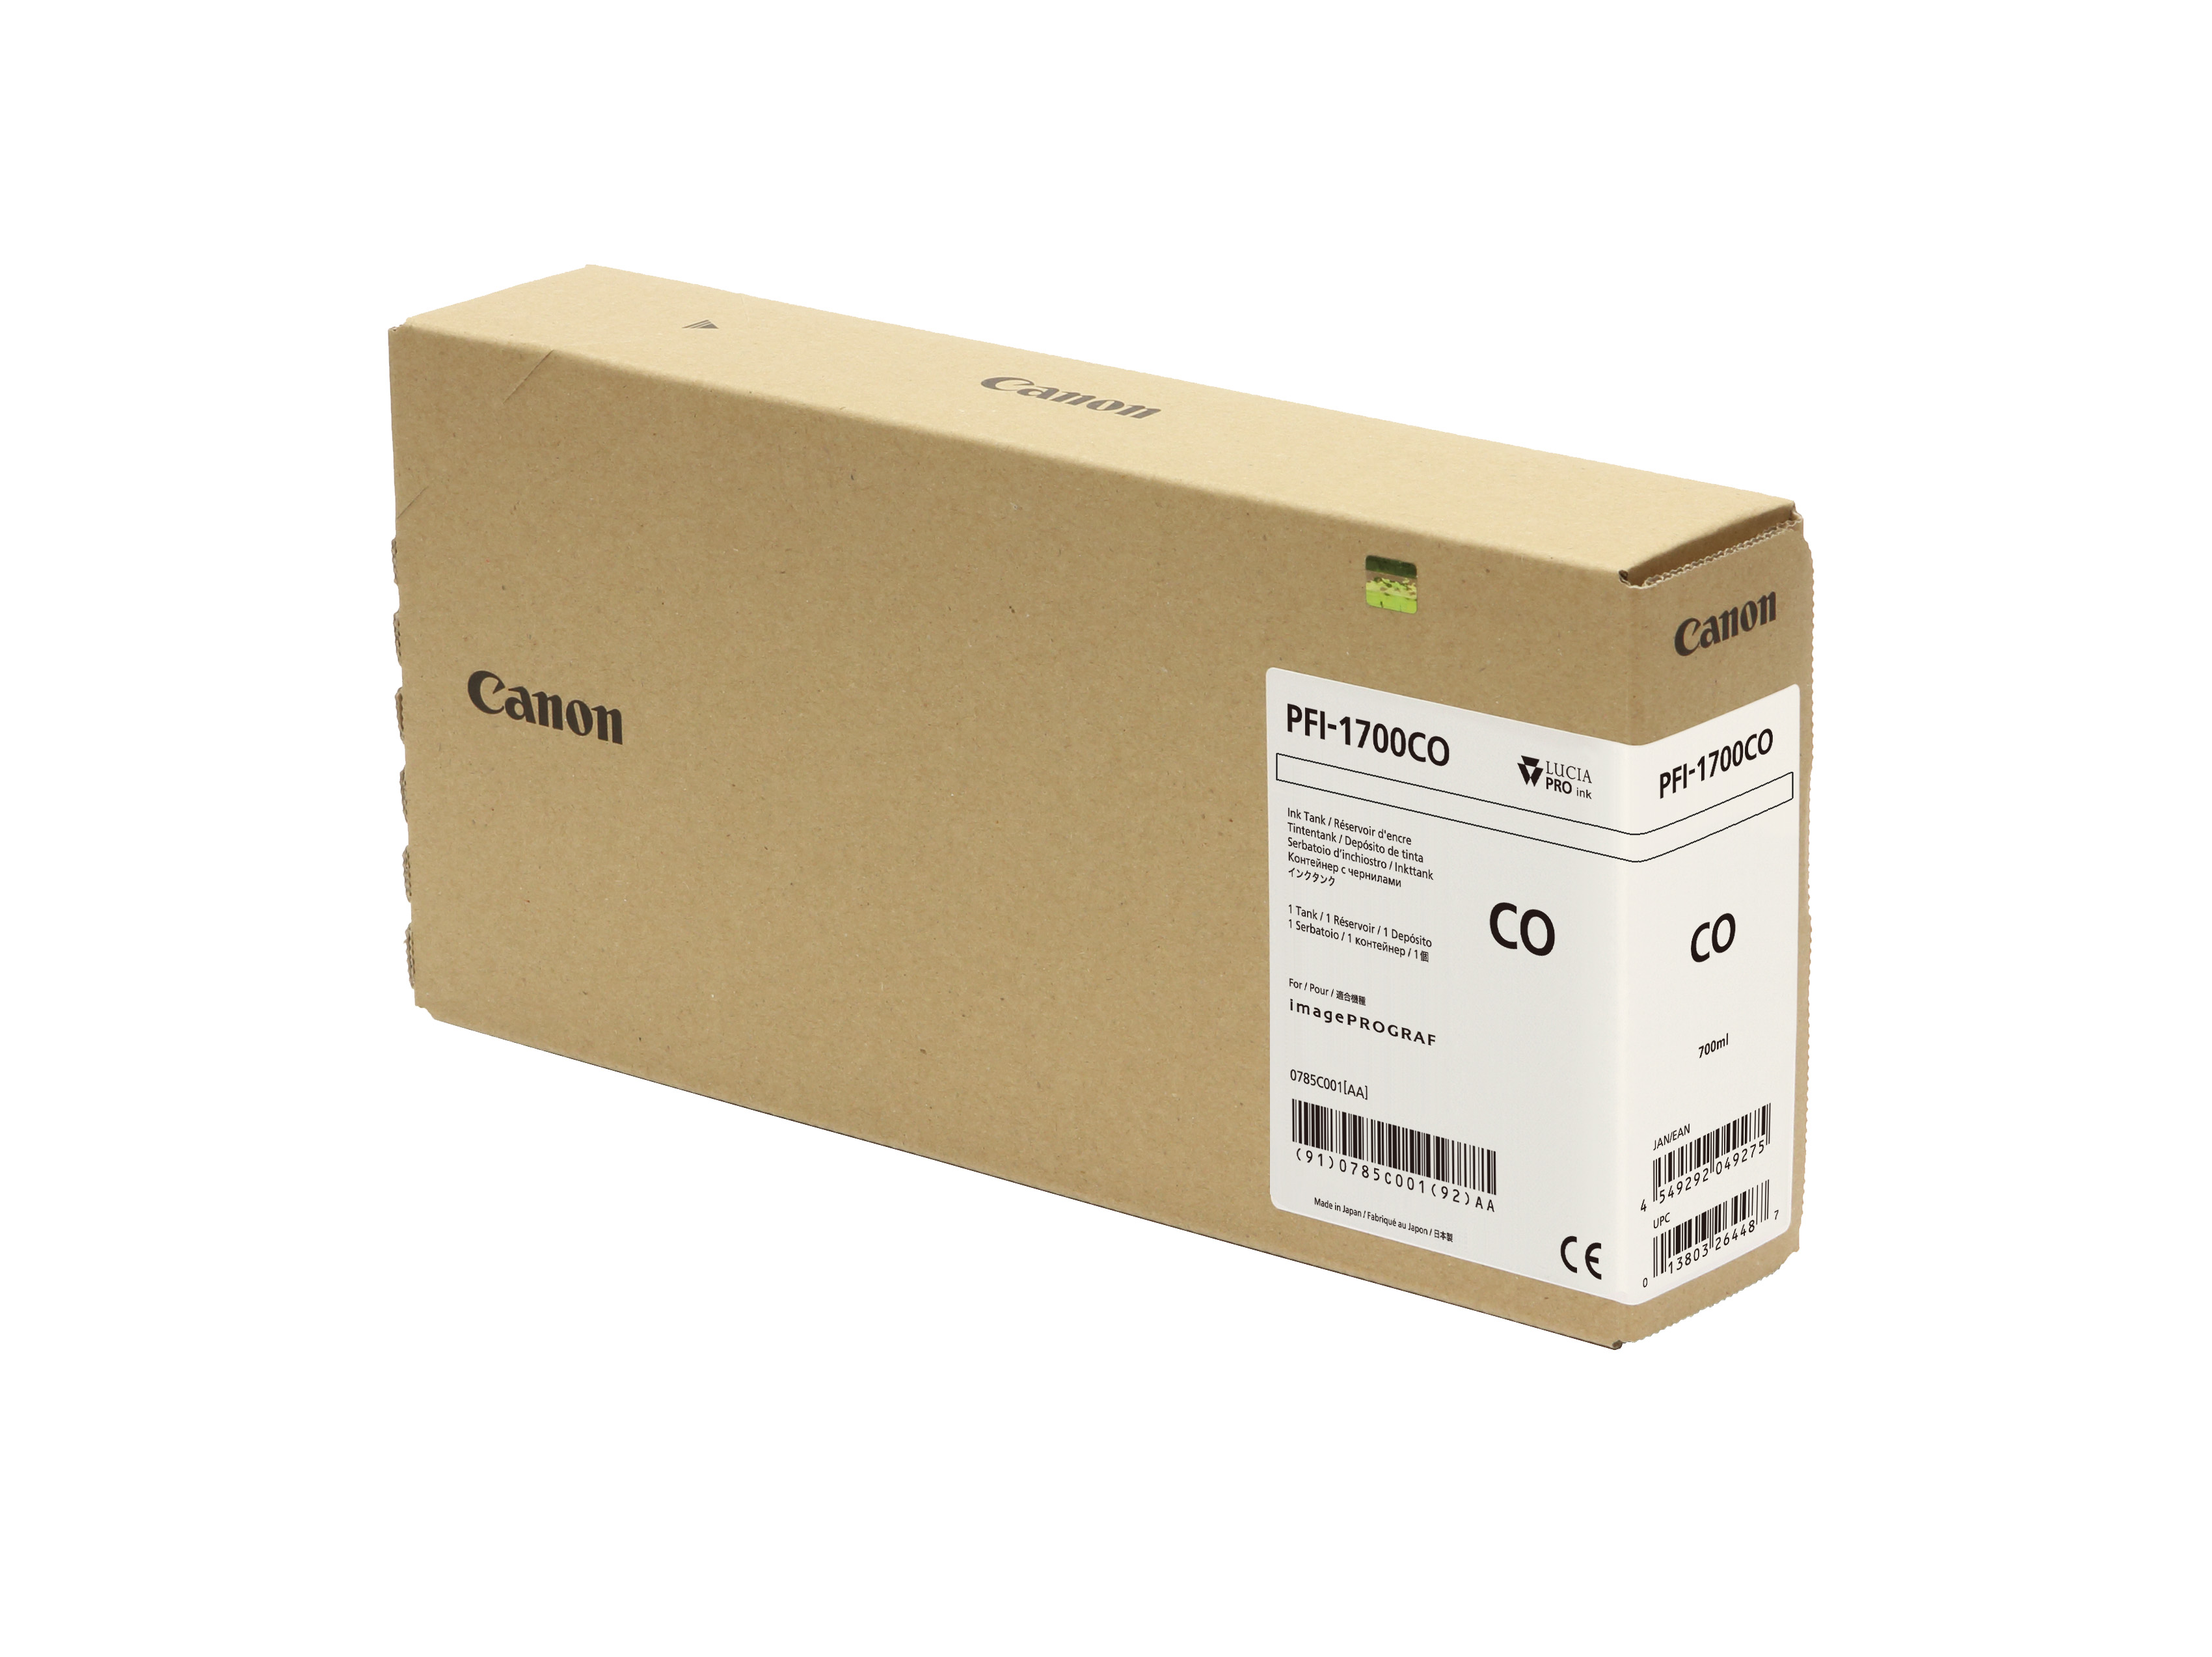 Canon PFI-1700CO Chroma Optimizer Ink Tank - 700ml Cartridge - for Canon PRO-2000, PRO-4000 Printers - 0785C001AA - next day delivery from GDS Graphic Design Supplies Ltd